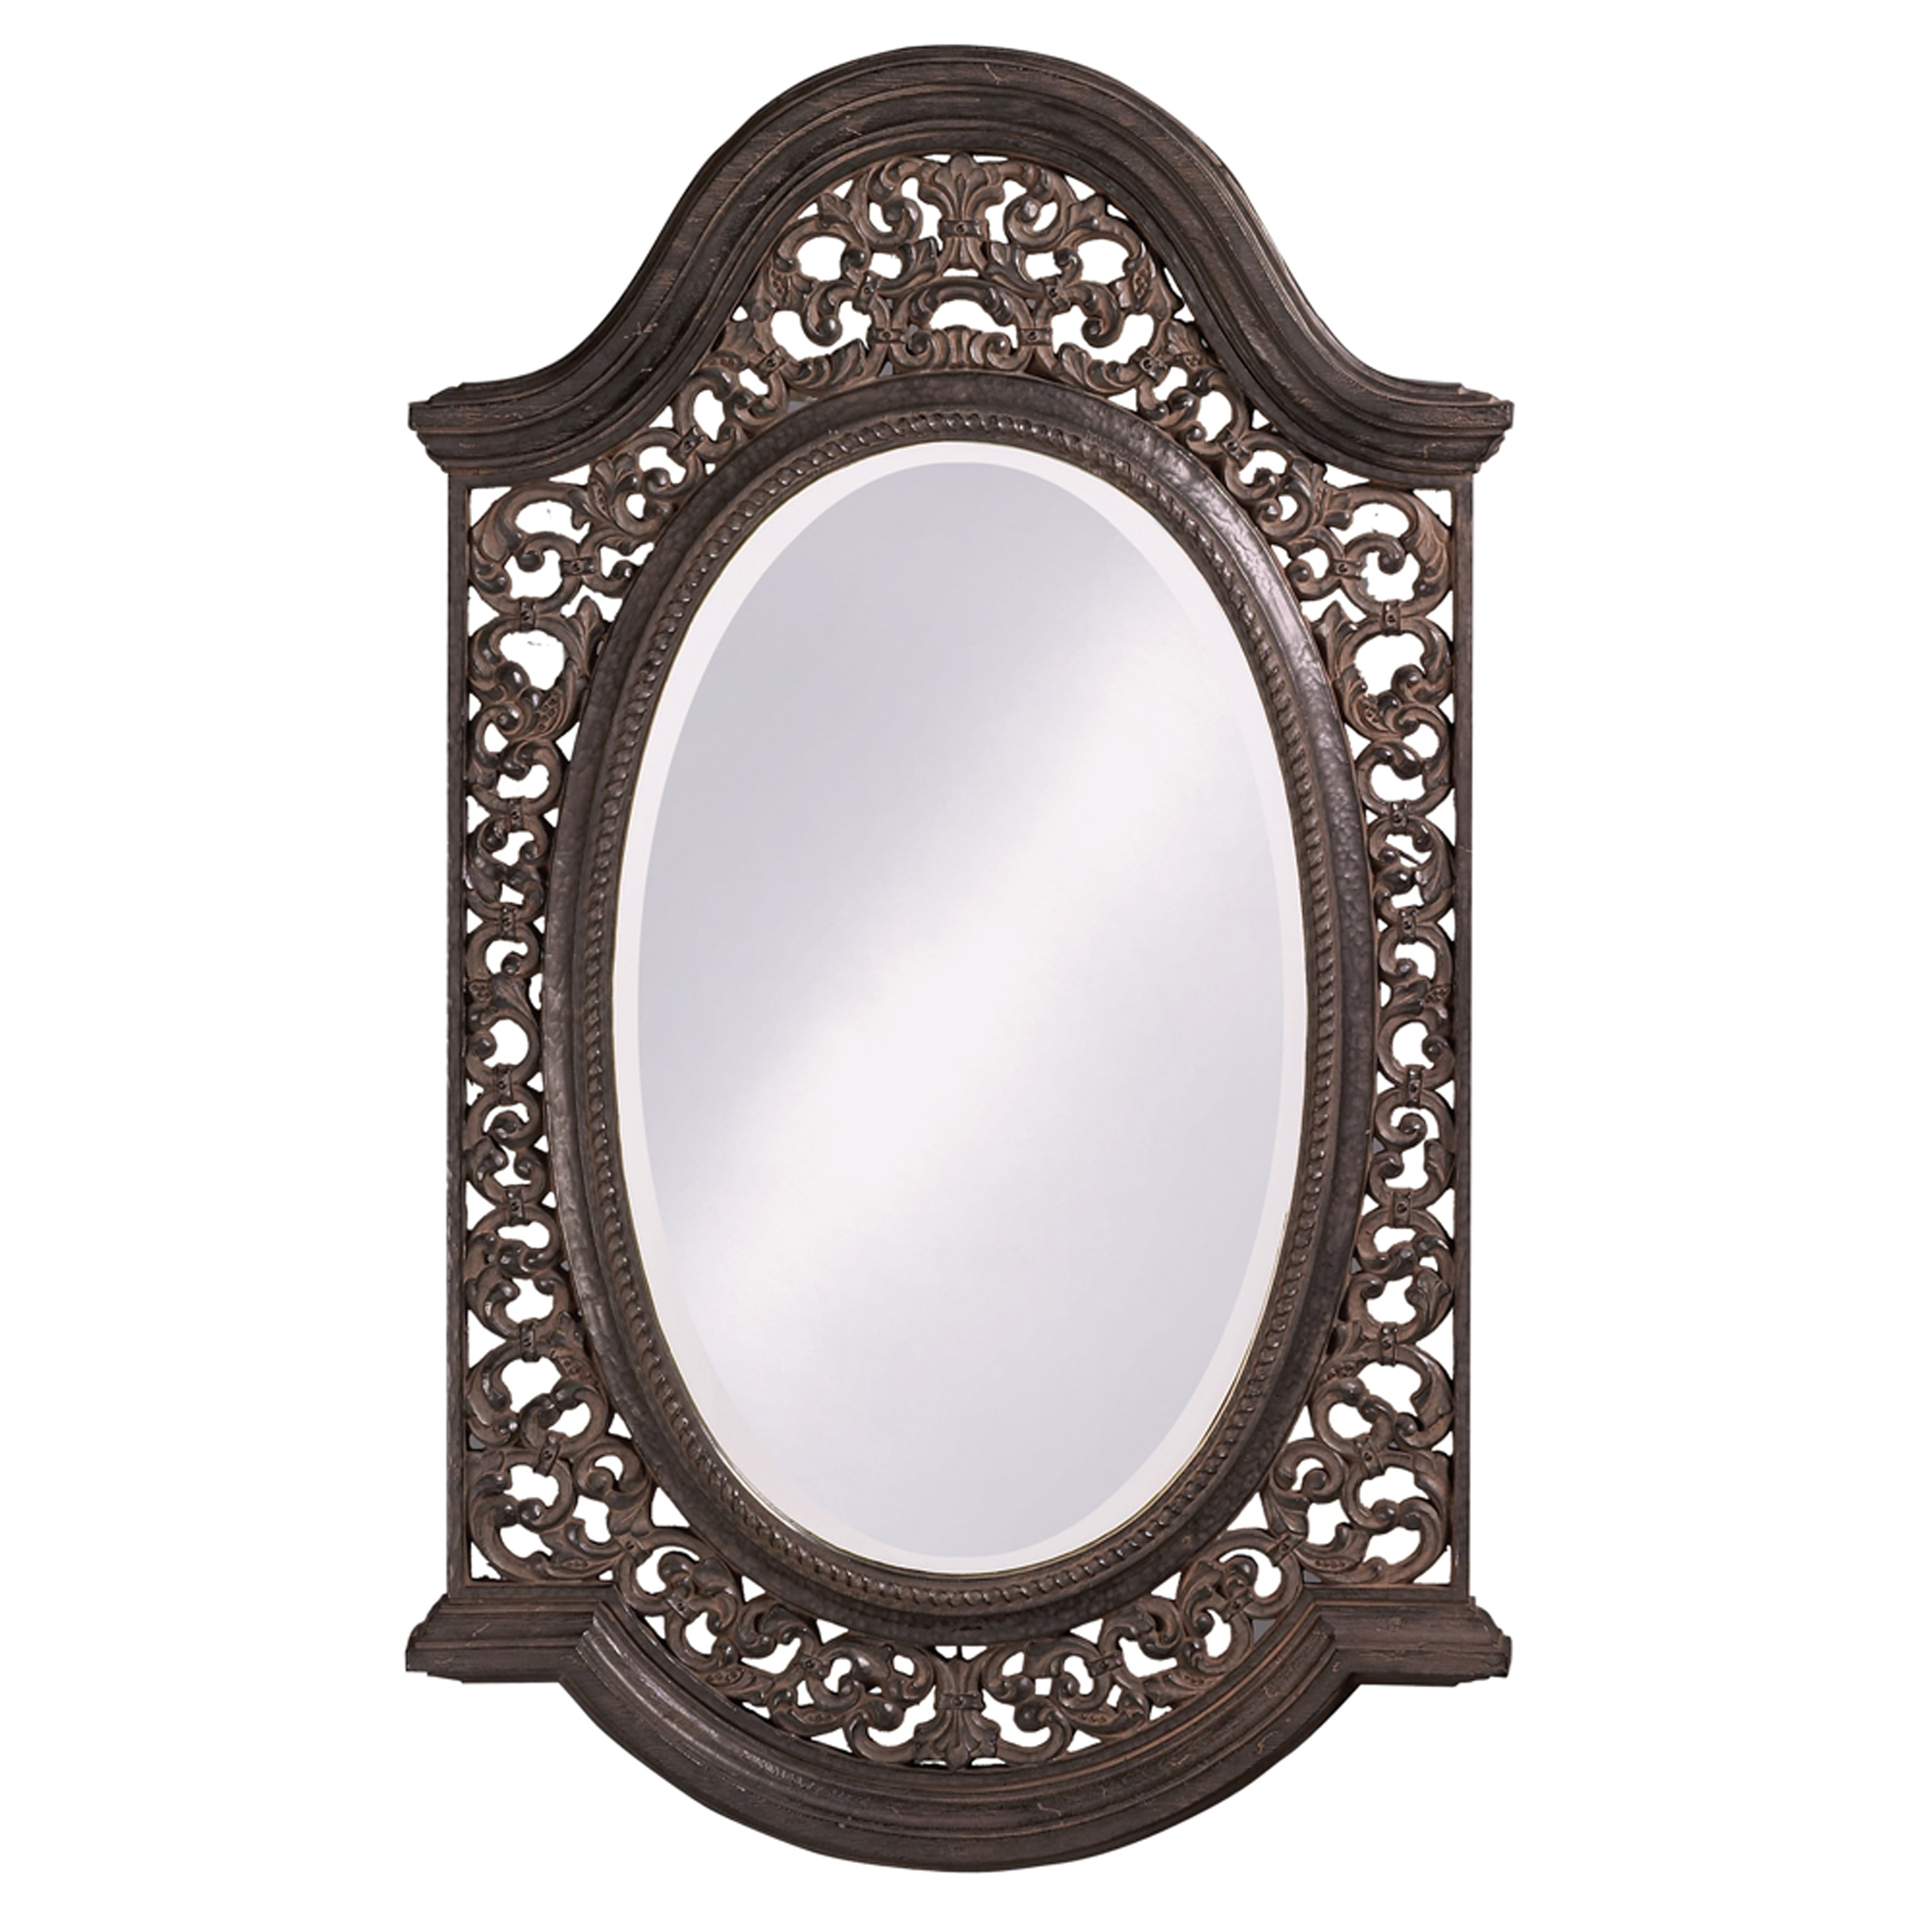 Antique Black Mirror With Silver Highlights Free Shipping Today With Regard To Antique Black Mirror (Image 3 of 15)